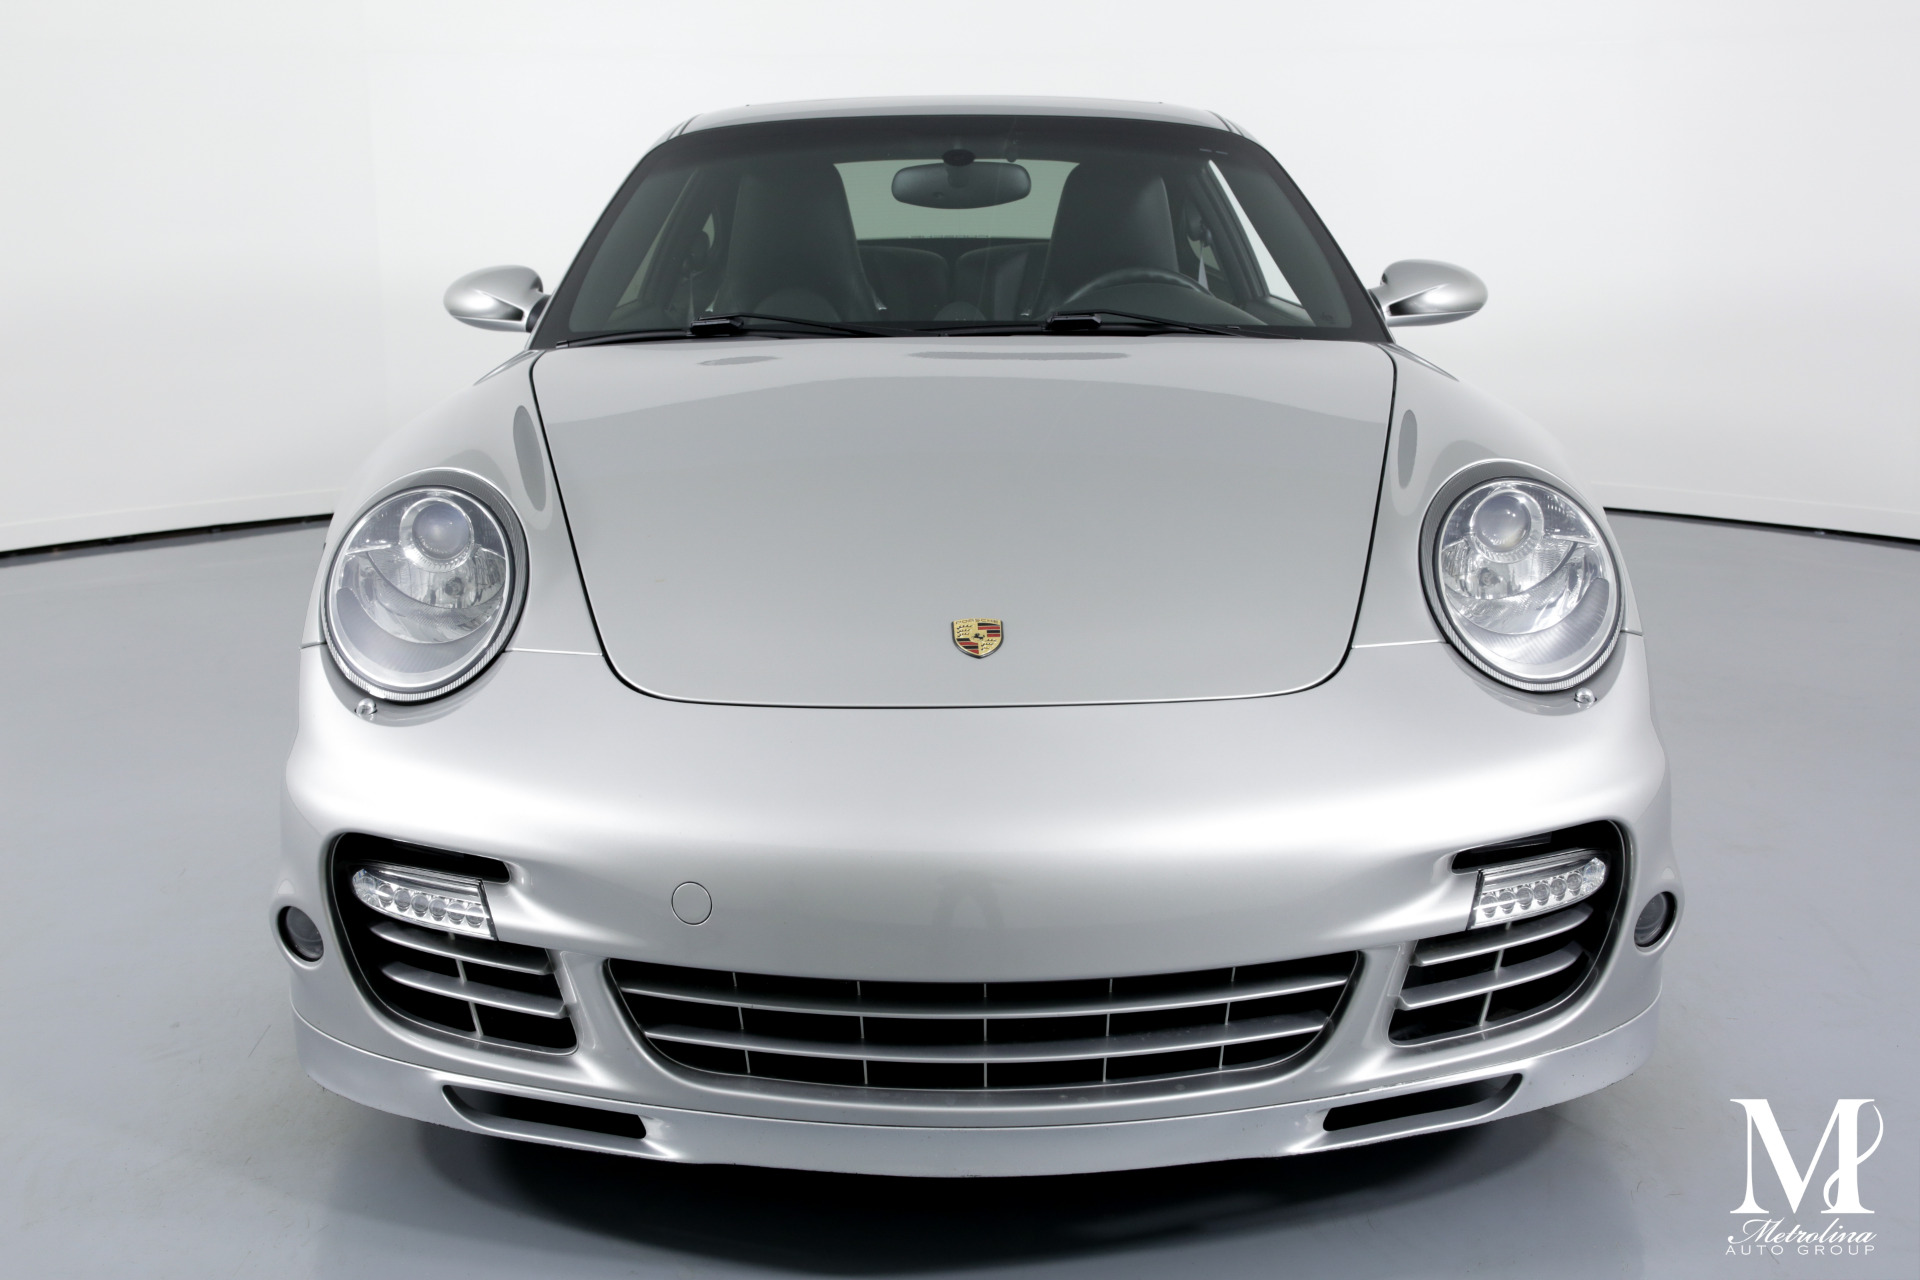 Used 2007 Porsche 911 Turbo for sale $74,996 at Metrolina Auto Group in Charlotte NC 28217 - 3